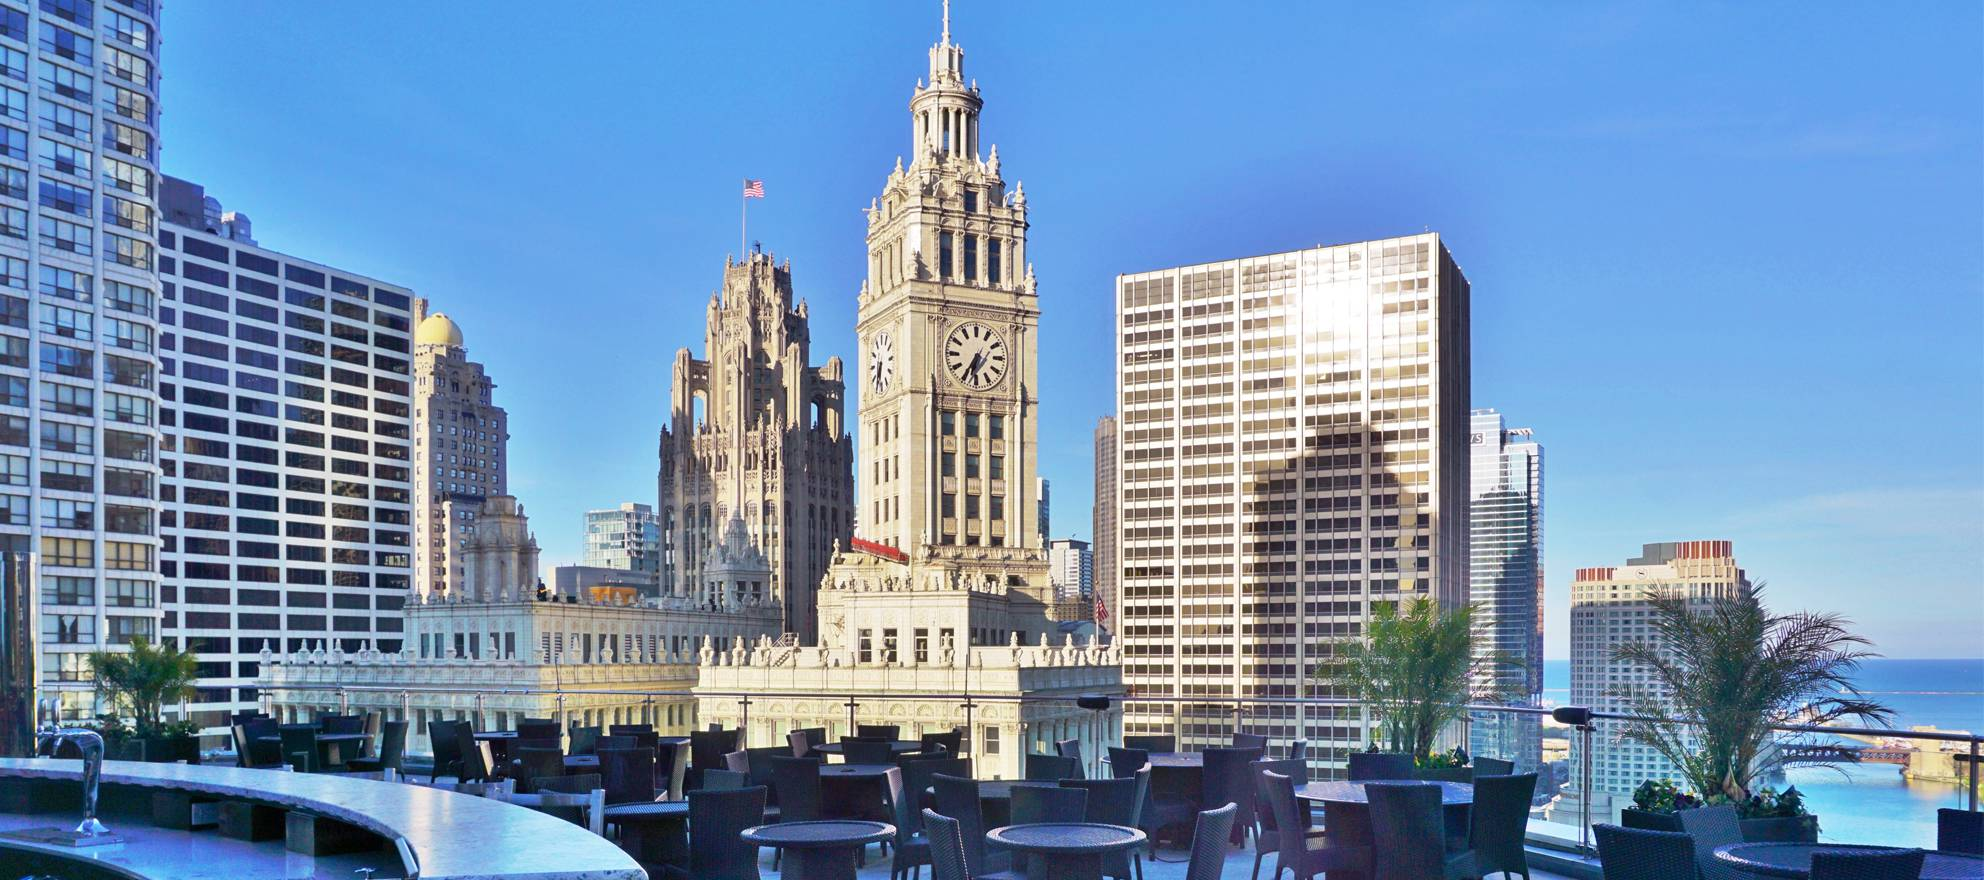 October 2015: Chicagoland real estate industry partnerships and developments